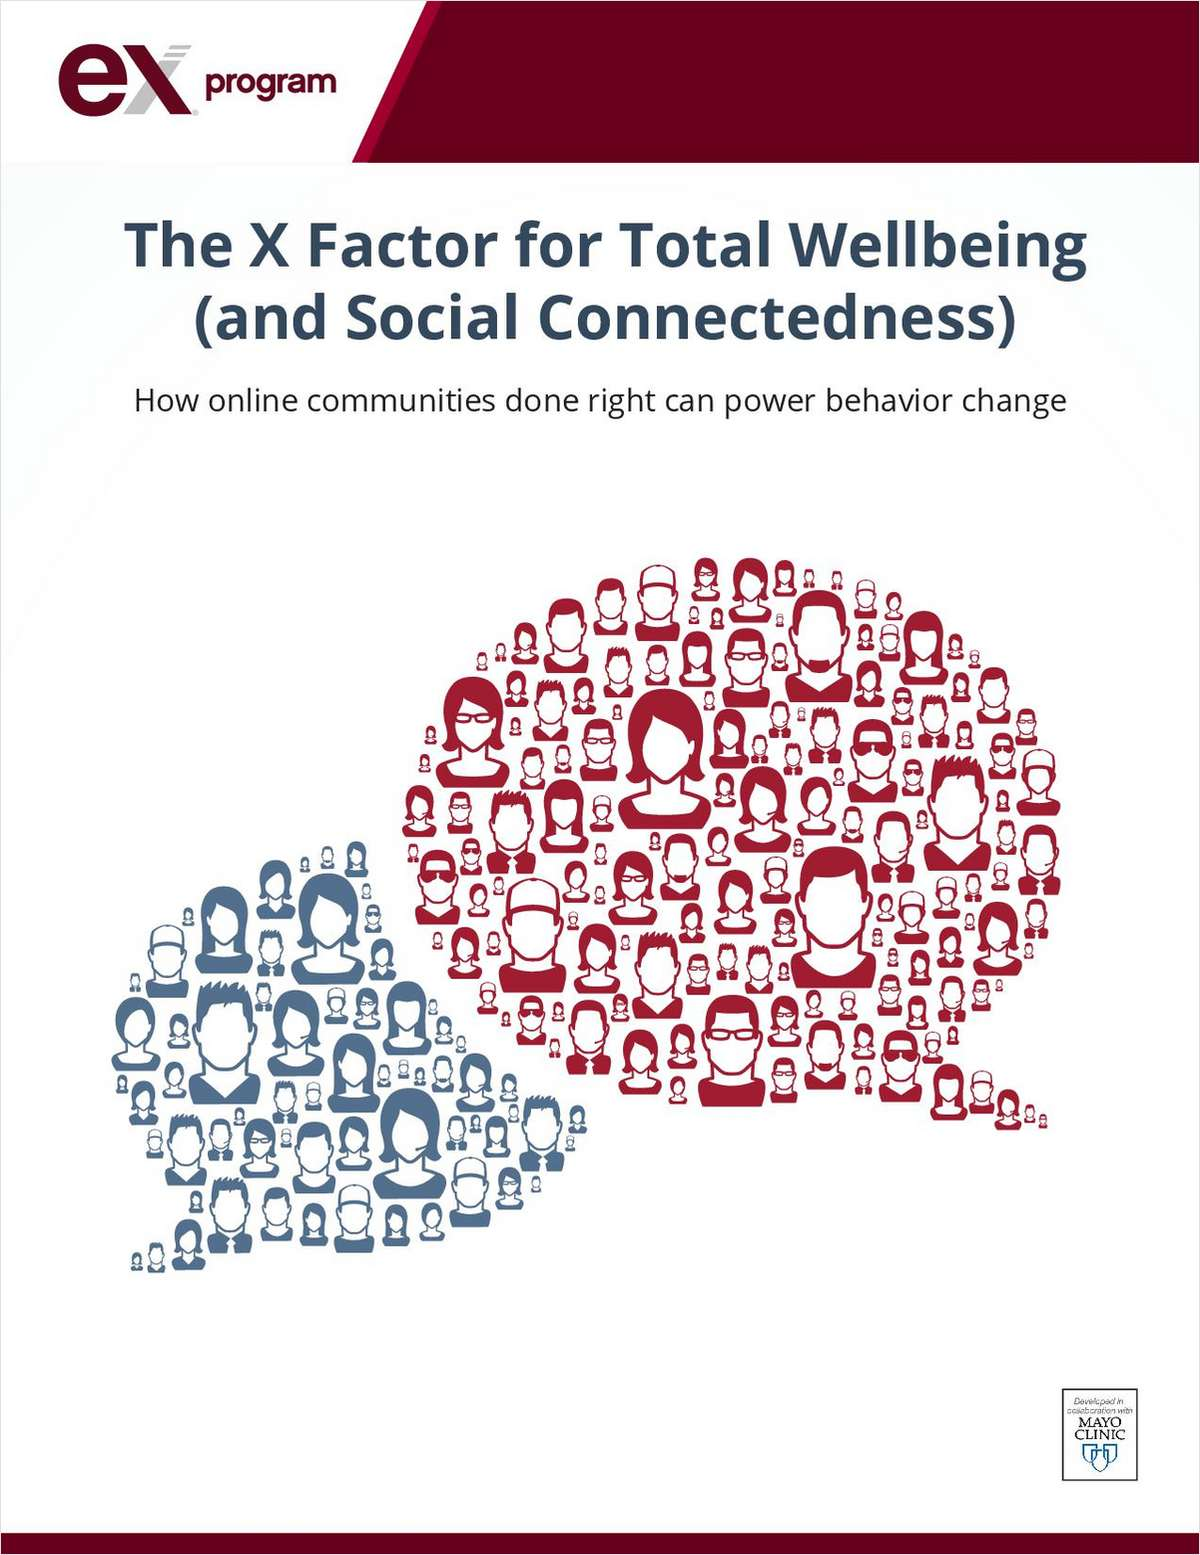 The X Factor for Total Wellbeing (and Social Connectedness)